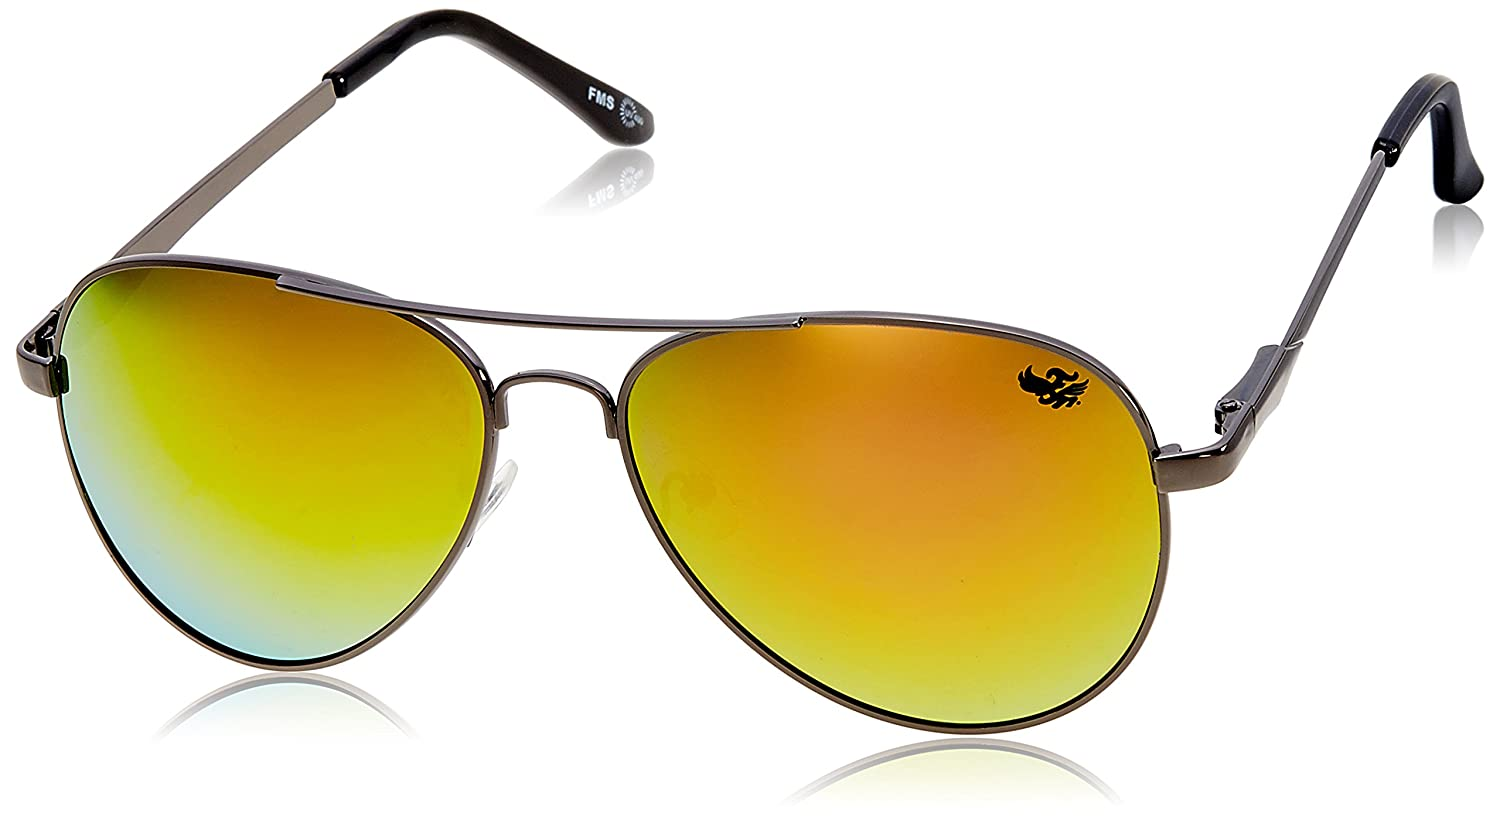 Min 50% off Flying Machine Men's Clothing & Acessories By Amazon | Flying machine Aviator Sunglasses (Shiny Gun) (FMS-111|205|FREESIZE) @ Rs.508